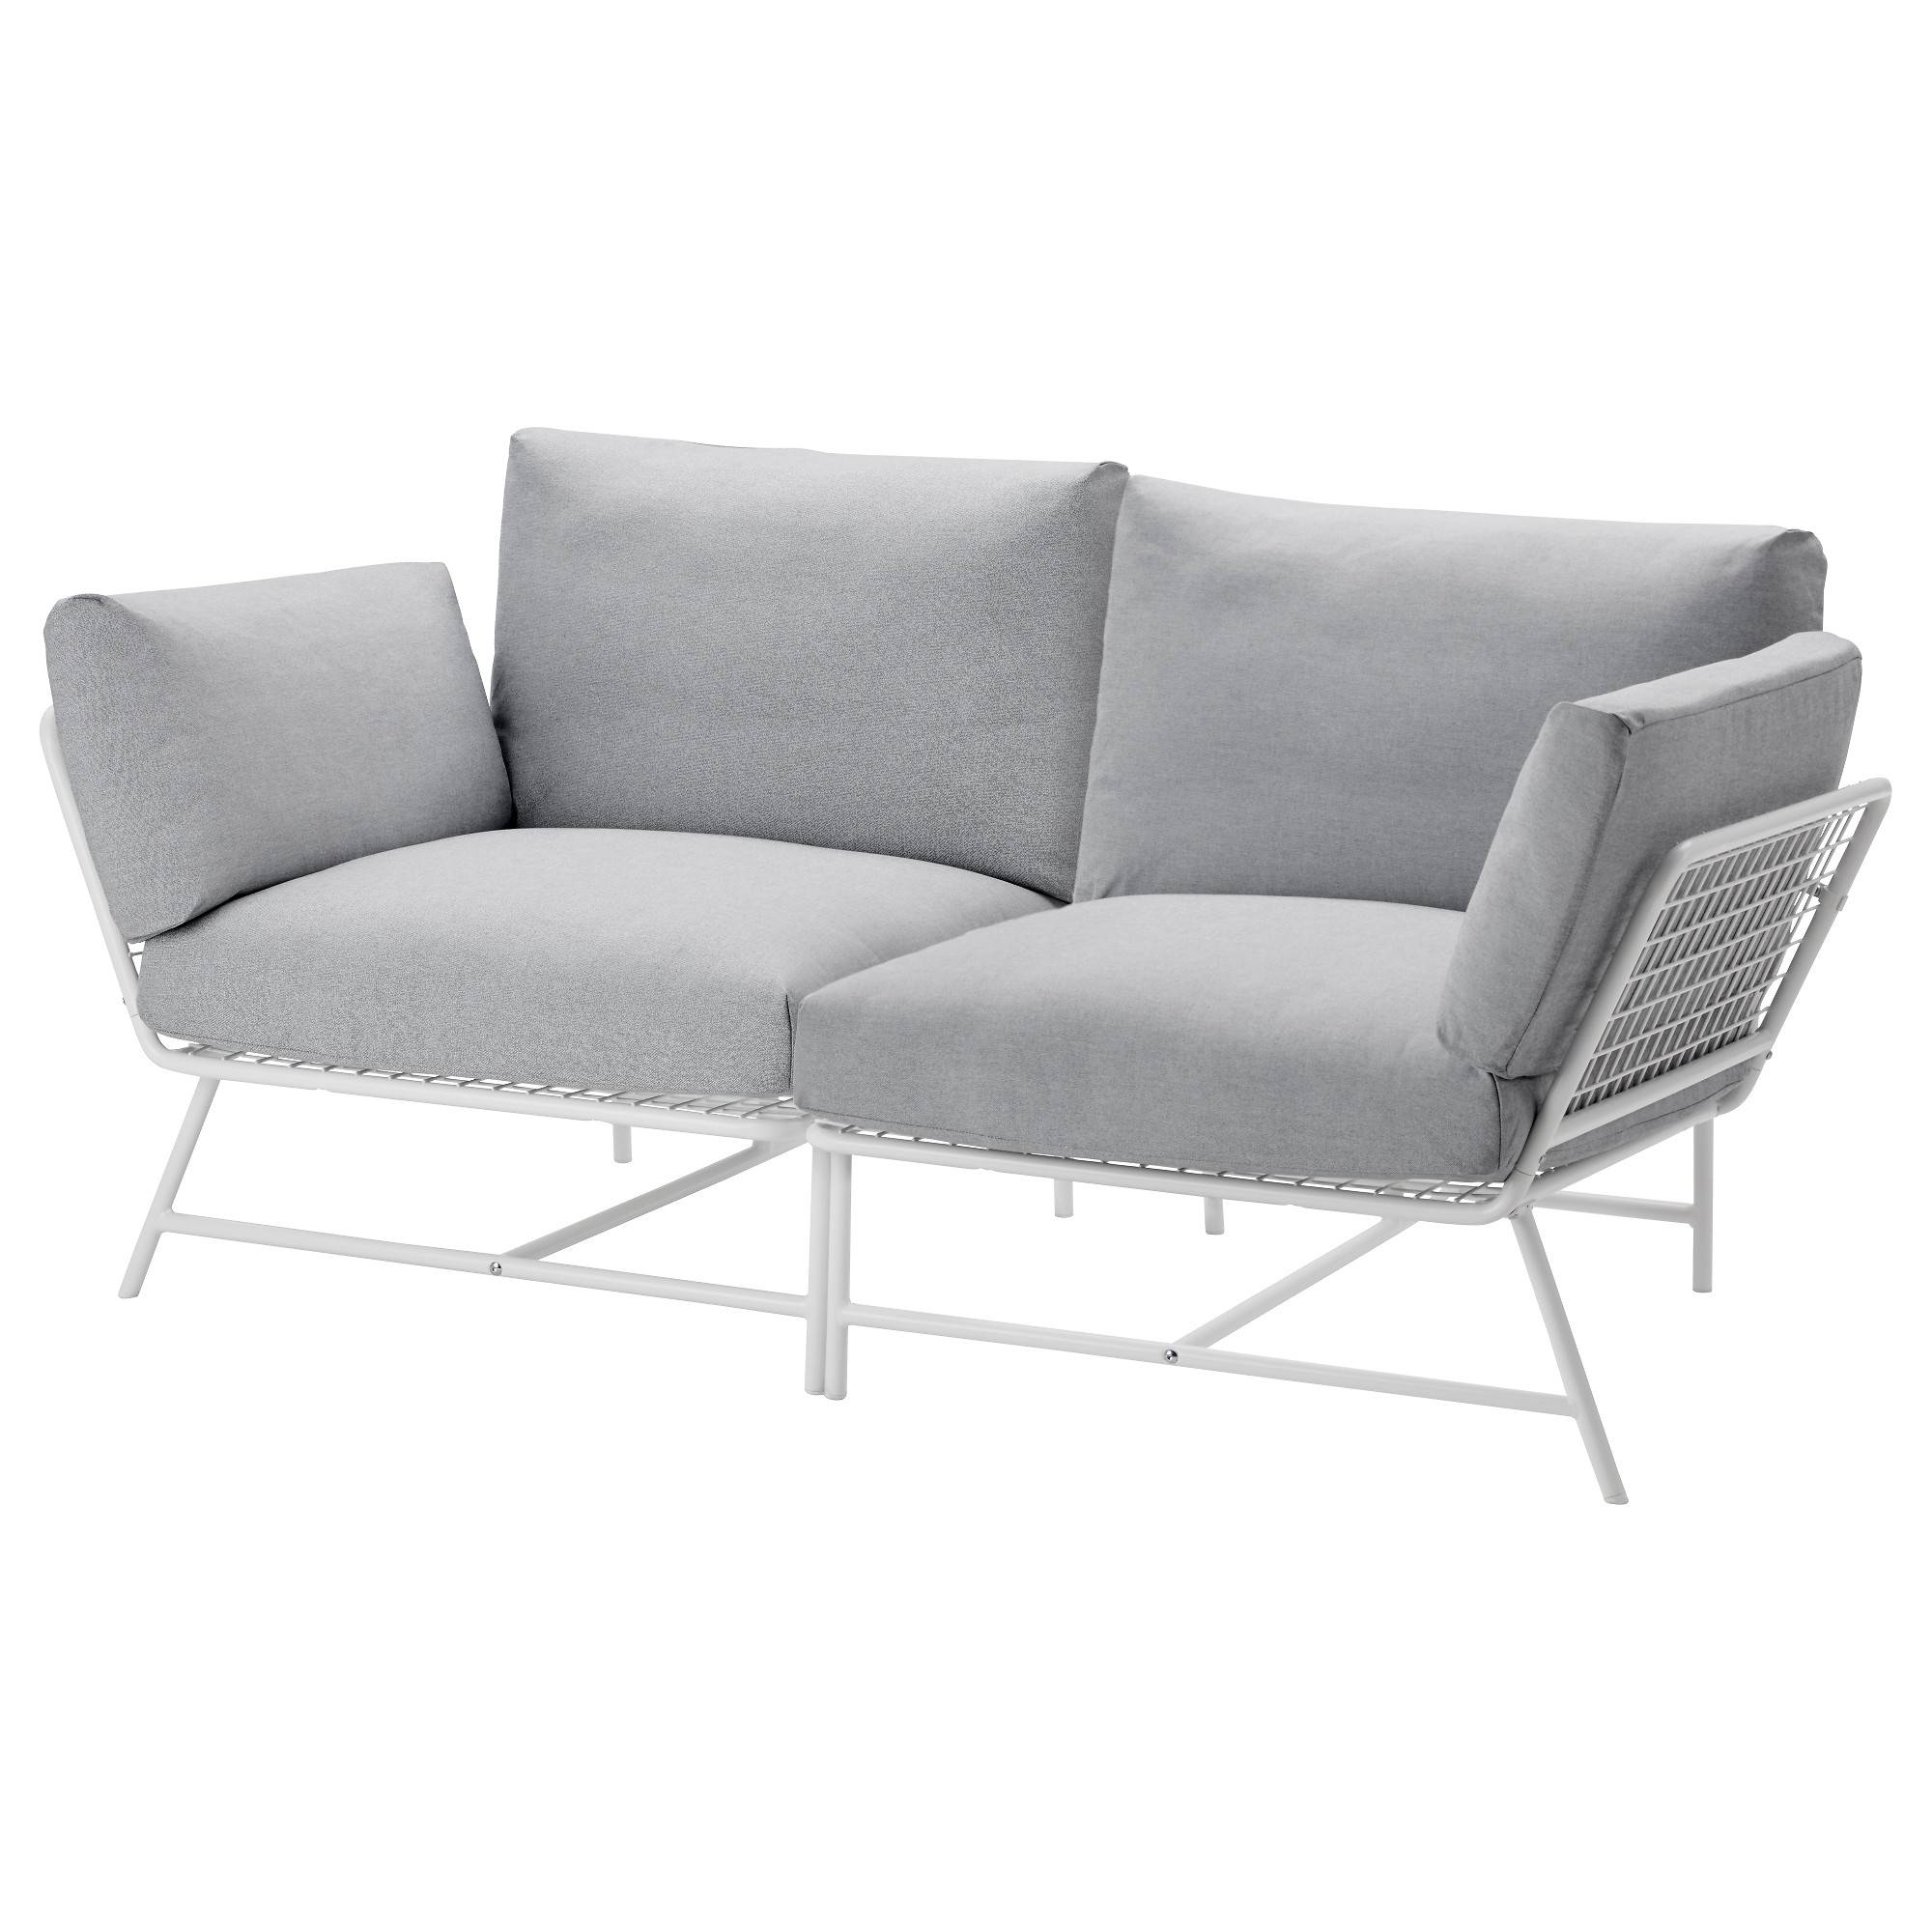 Small Sofa & 2 Seater Sofa | Ikea regarding Small 2 Seater Sofas (Image 17 of 30)